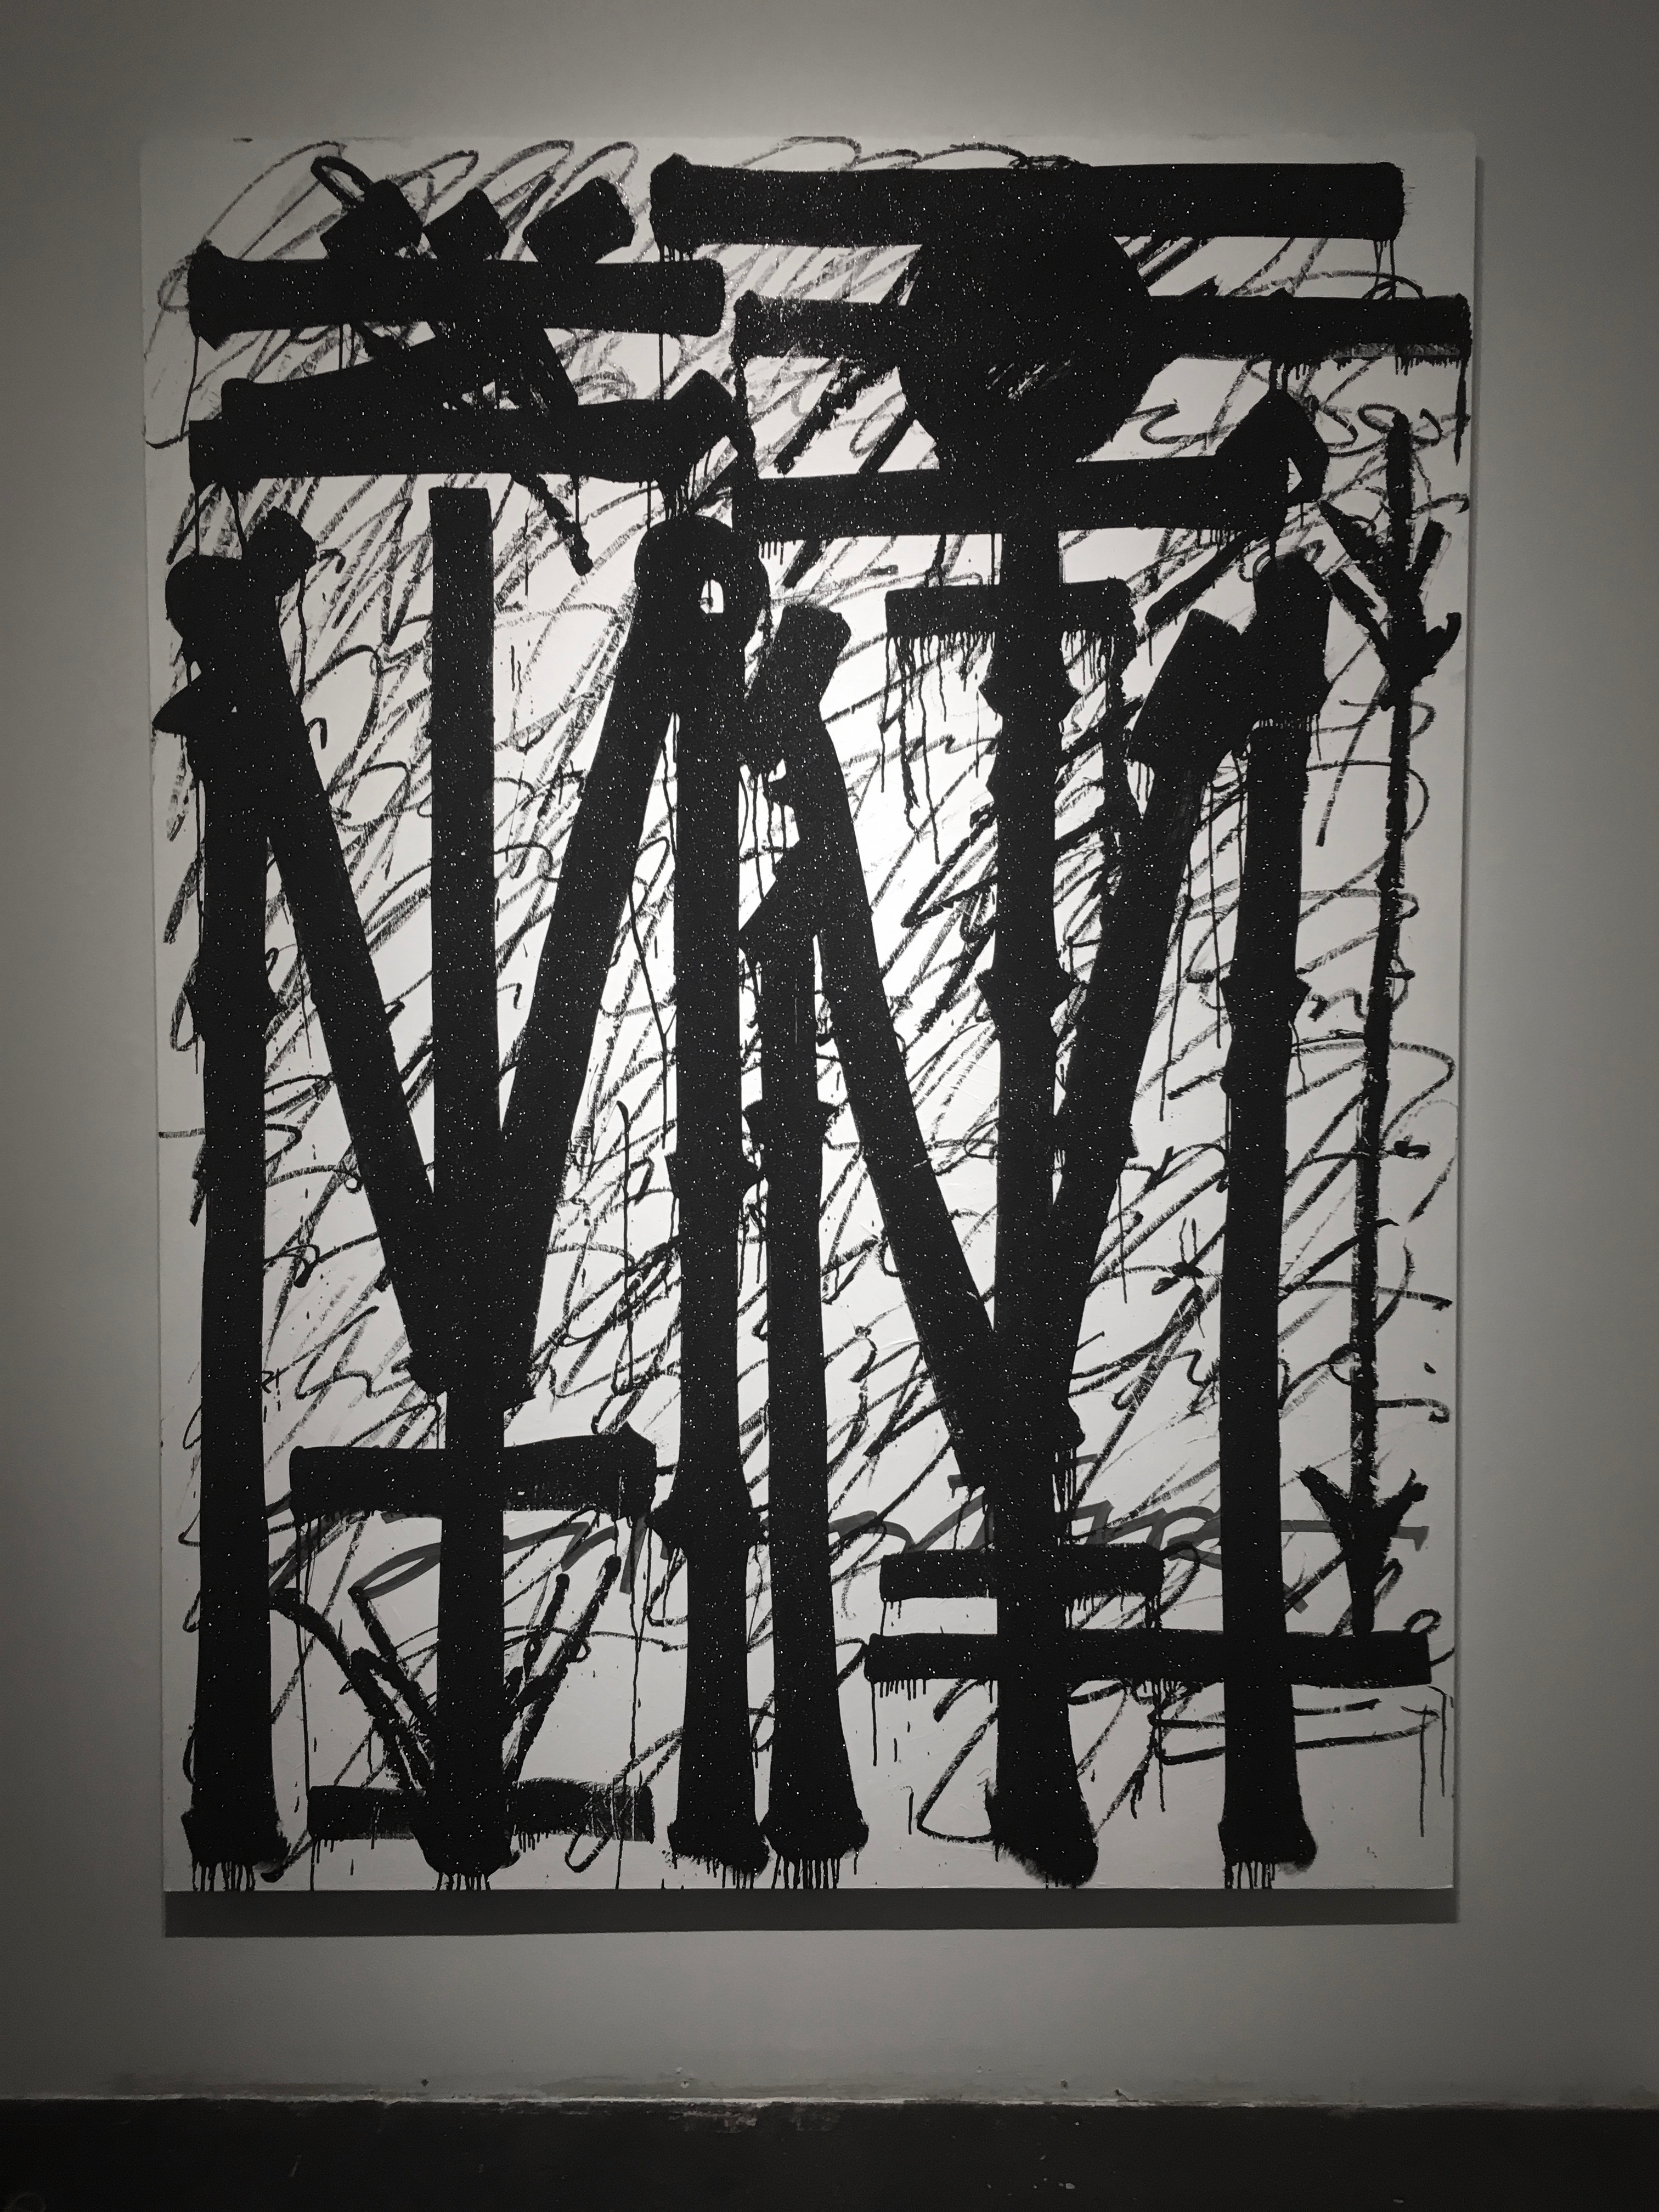 Retna's contribution to the group show